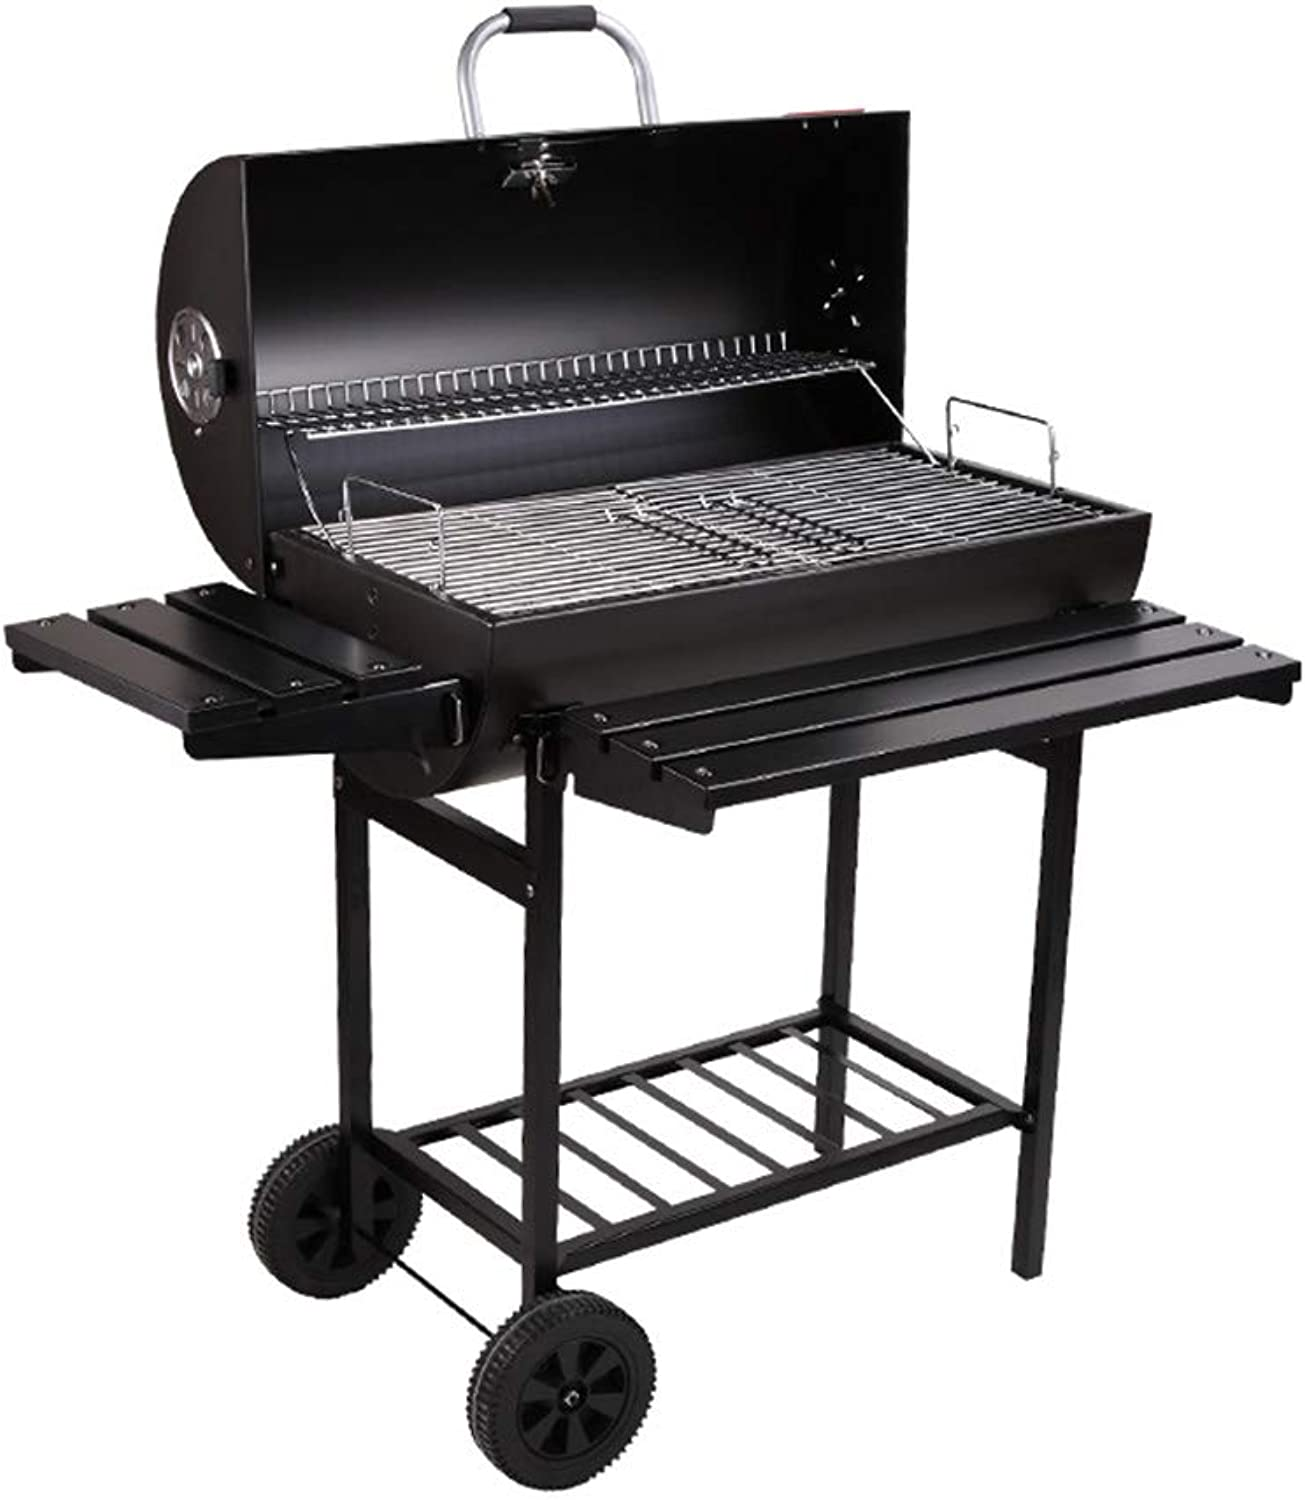 Grill Charcoal Barbecue Grill Outdoor Pit Patio Backyard Home Meat Cooker Smoker with Offset Smoker,a